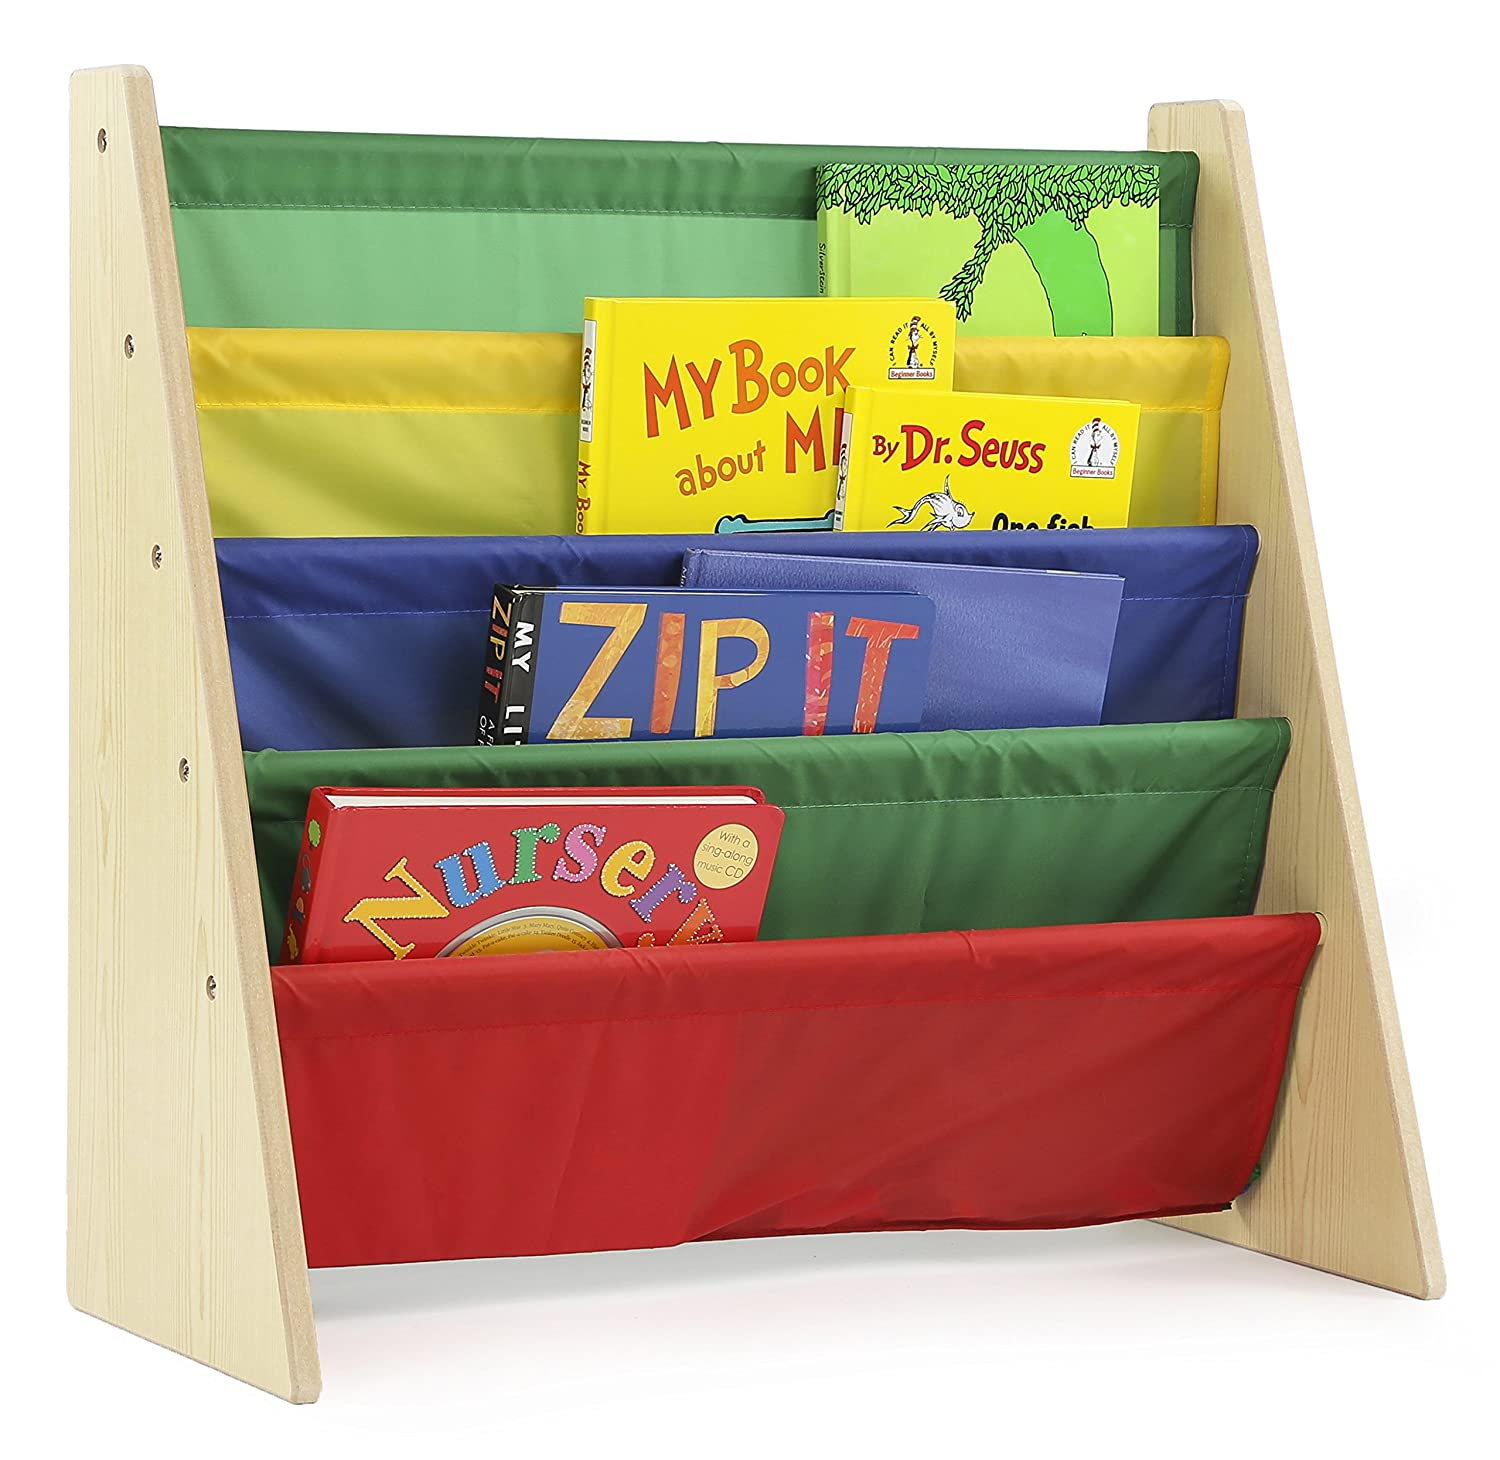 Classroom bookshelf book rack with pockets